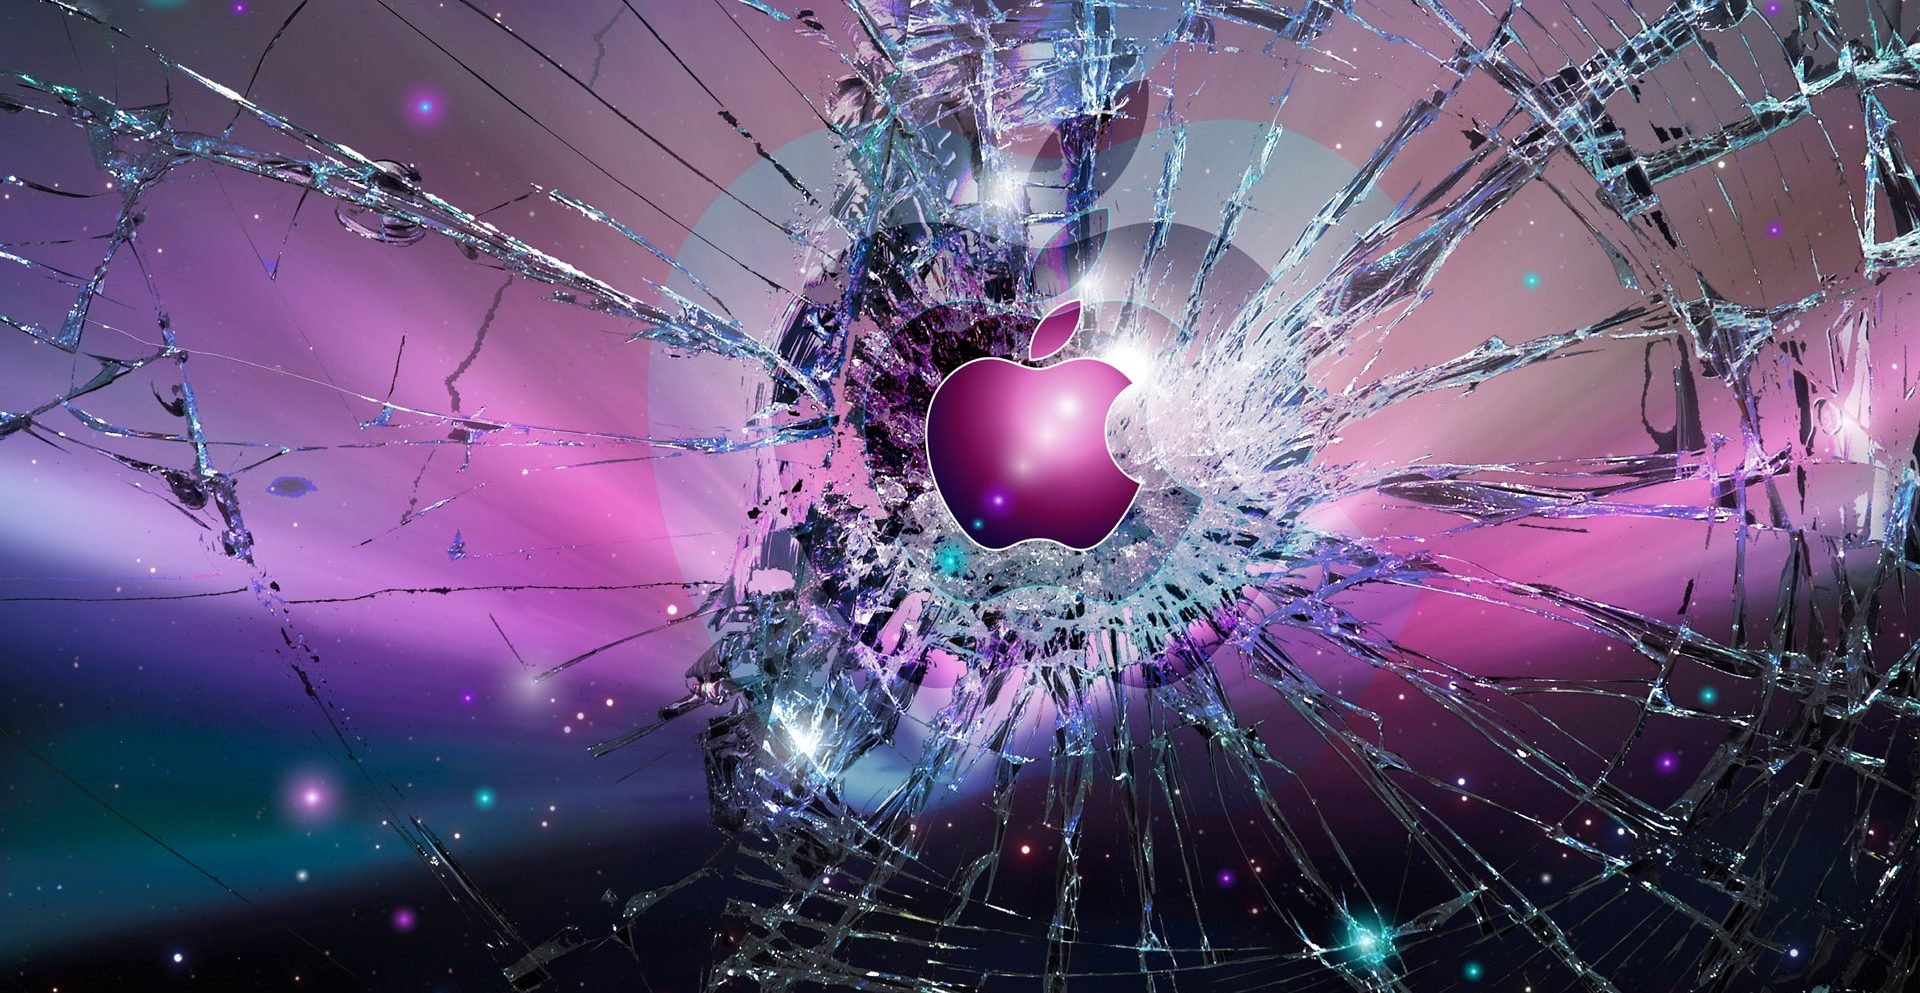 Apple-has-sophisticated-machines-to-repair-iPhones-the-Horizon-Machines-and-now-the-company-is-rea-wallpaper-wp3402545